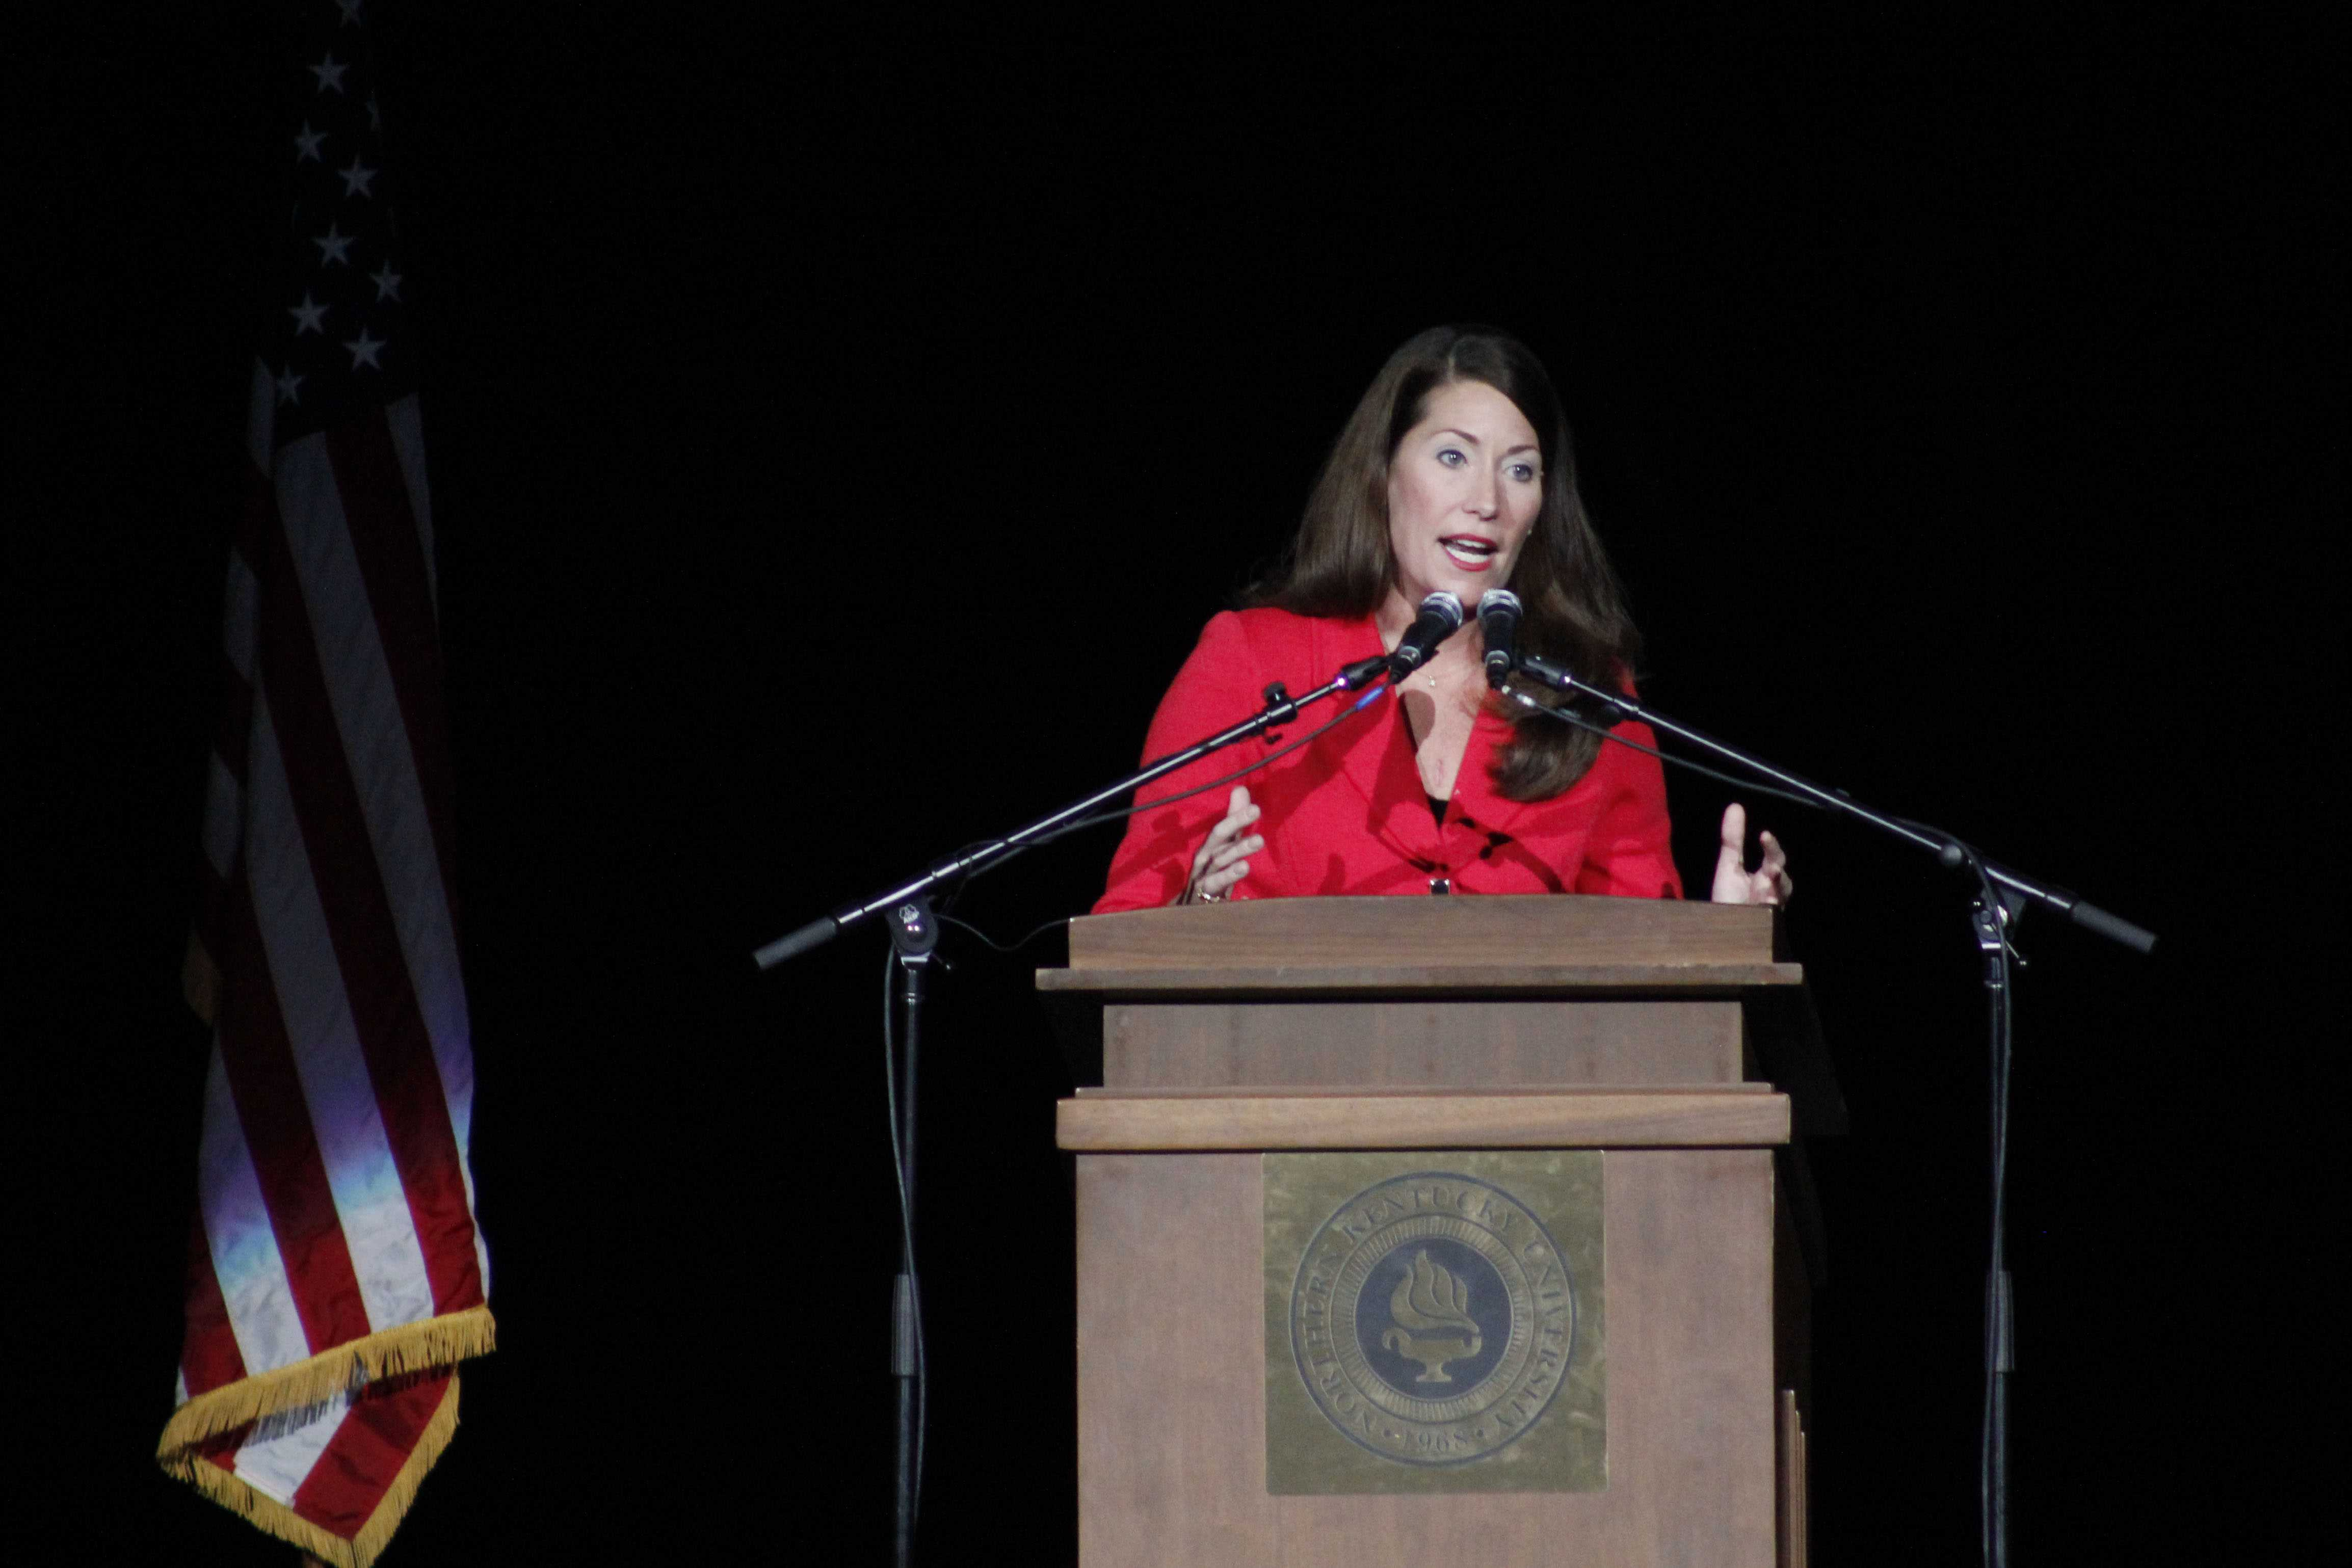 Alison+Grimes+discusses+Mitch+McConnell%27s+experience+as+a+longstanding+Kentucky+senator.+She+said+he+longer+represents+Kentuckians+the+way+they+deserve+and+that+it%27s+time+for+change.